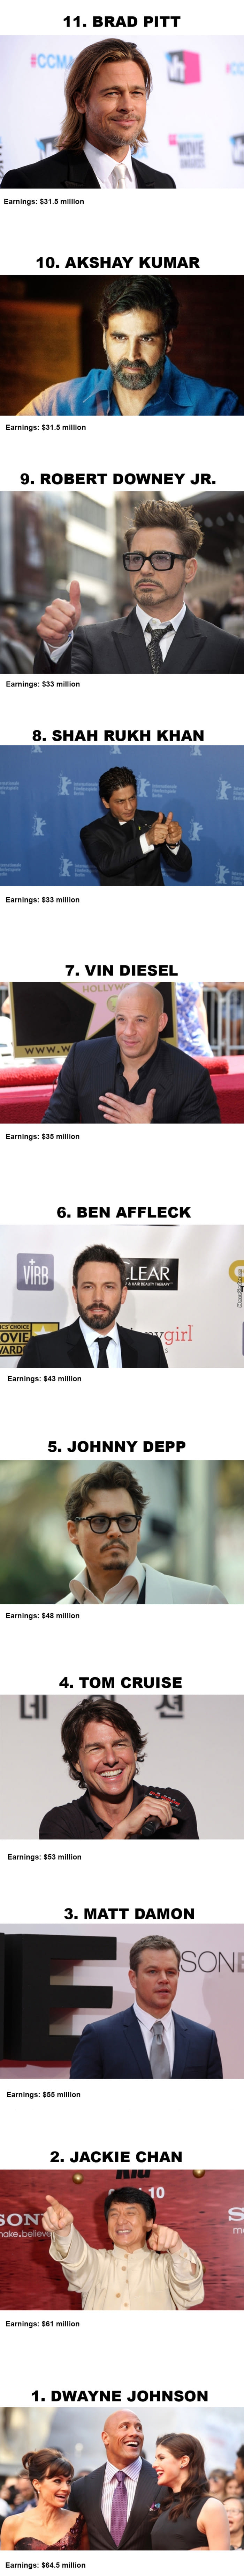 Top 11 Highest Paid Actors In 2017